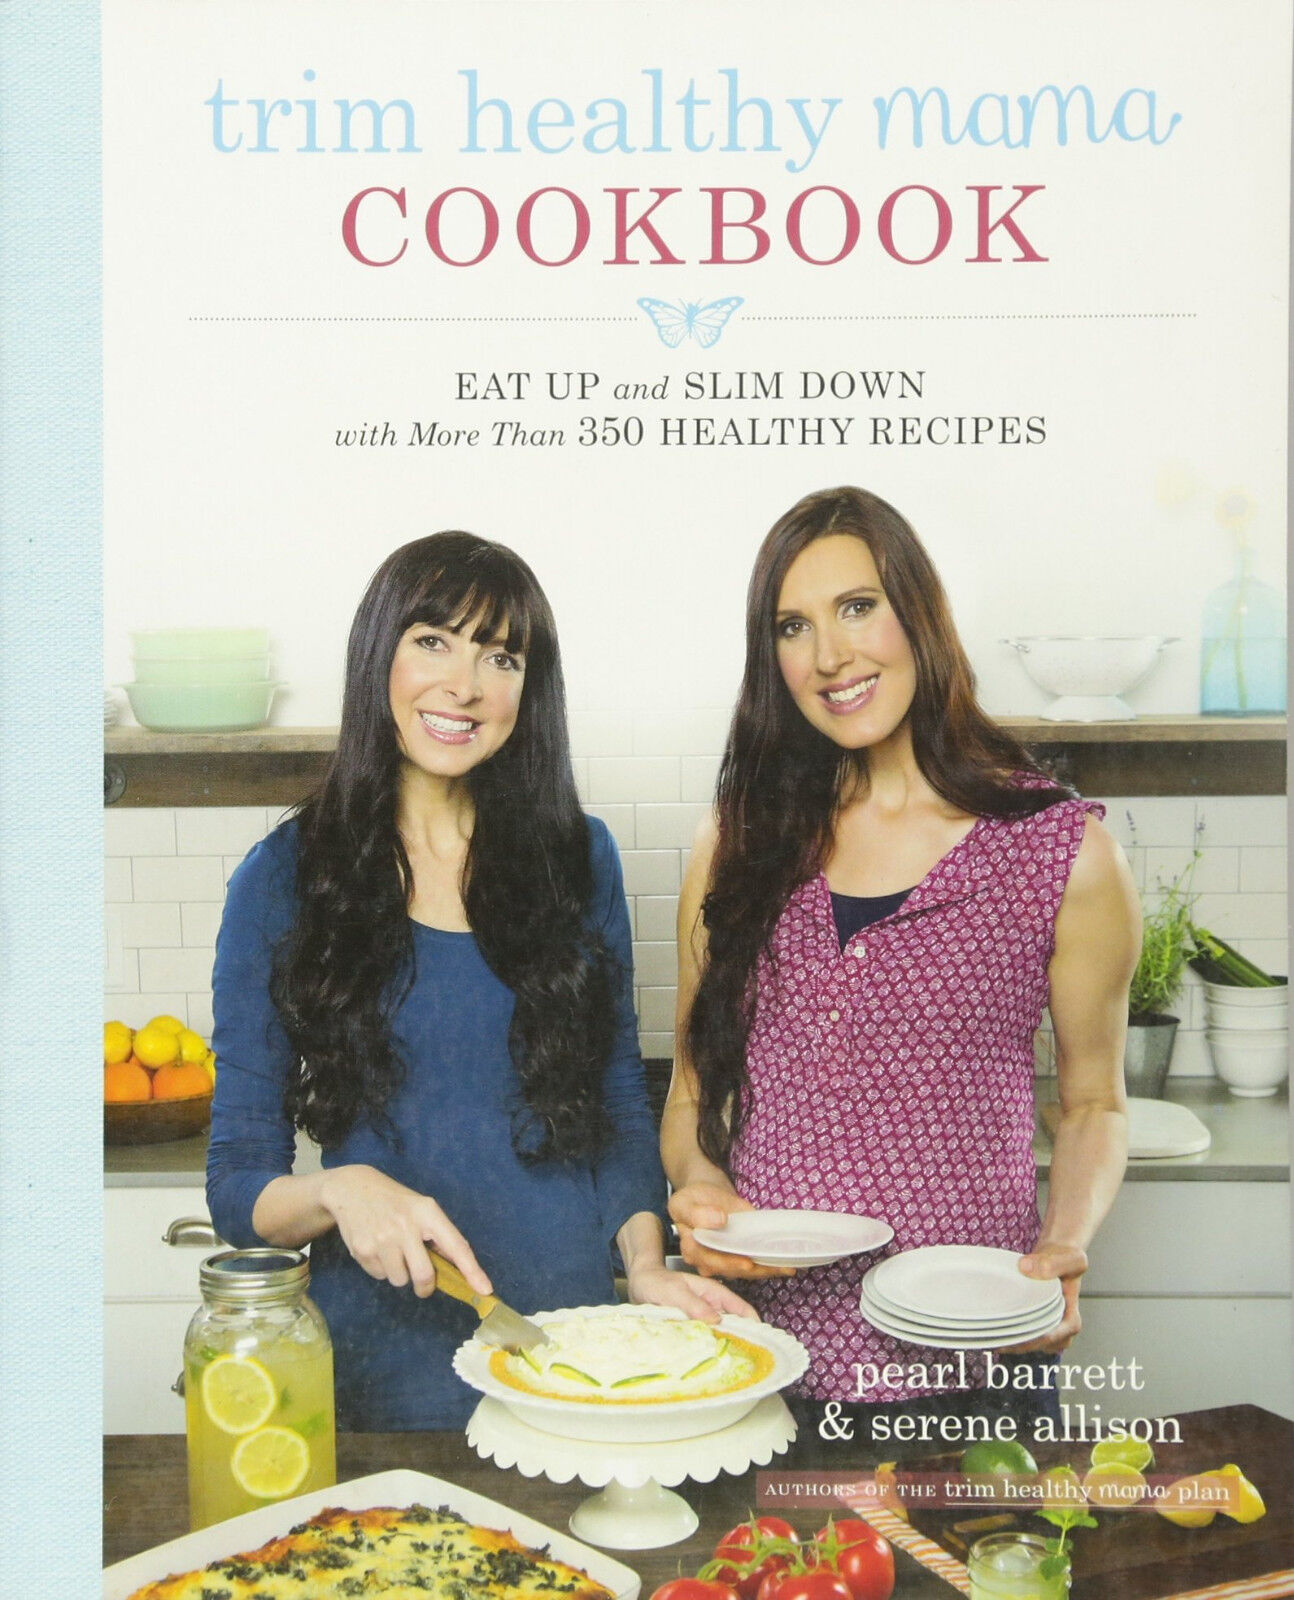 Trim Healthy Mama Cookbook Pearl Barrett Serene Allison Over 350 Recipes WT73539